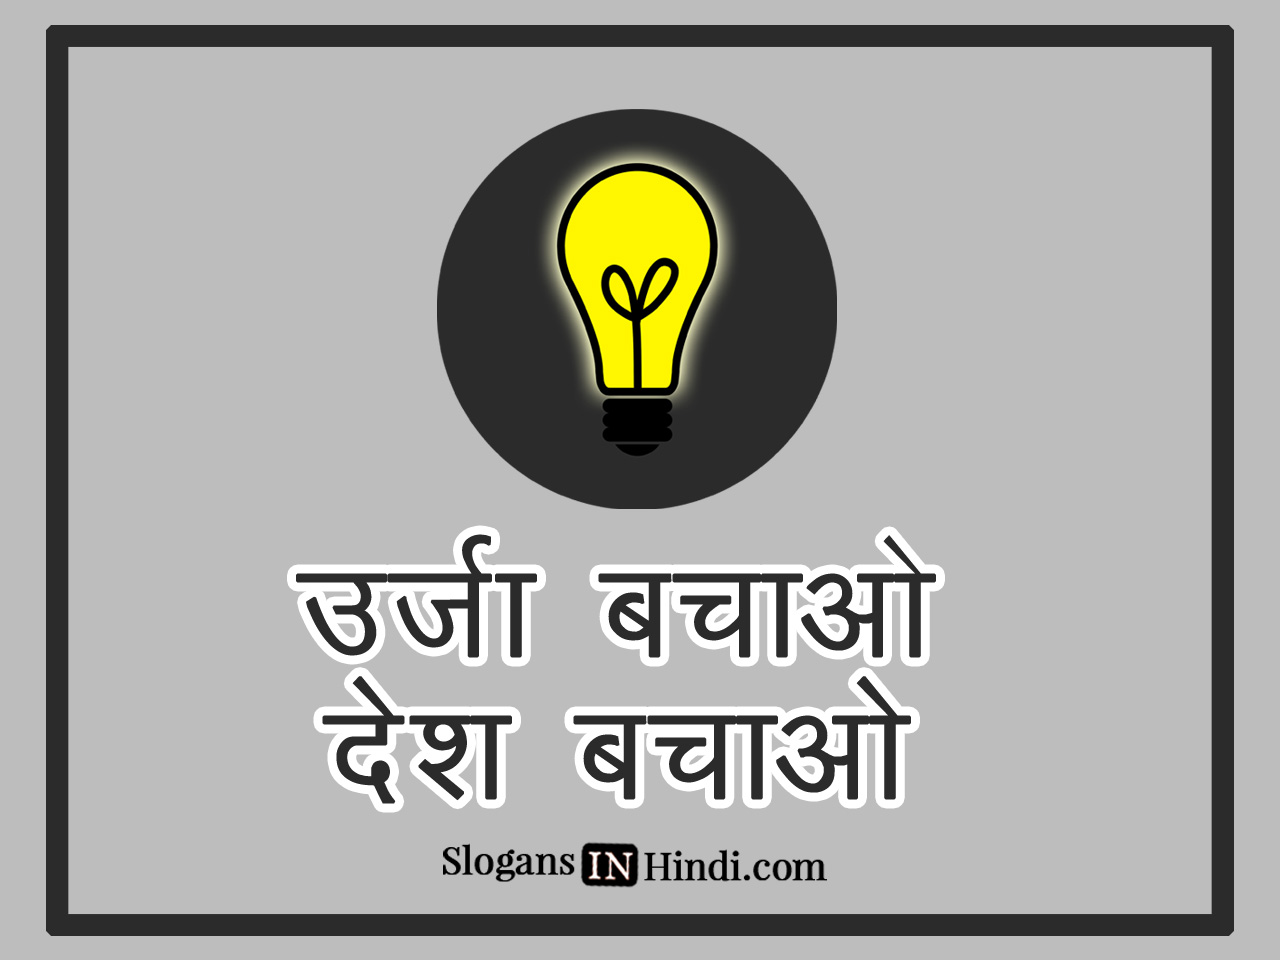 saving electricity in hindi Essays - largest database of quality sample essays and research papers on saving electricity in hindi.